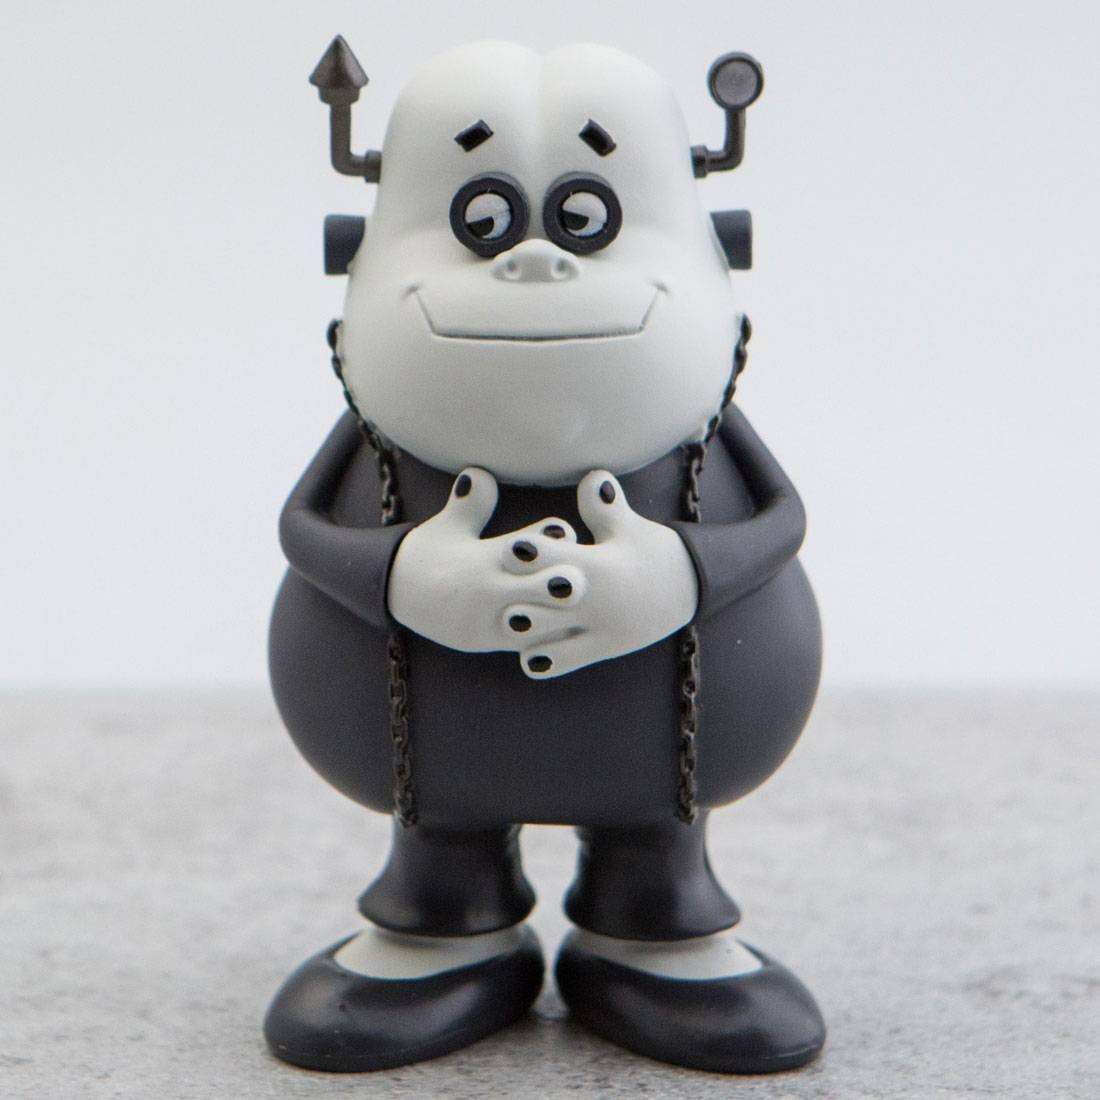 MINDstyle x Ron English Cereal Killer Minis Franken Fat - Convention Exclusive (gray)